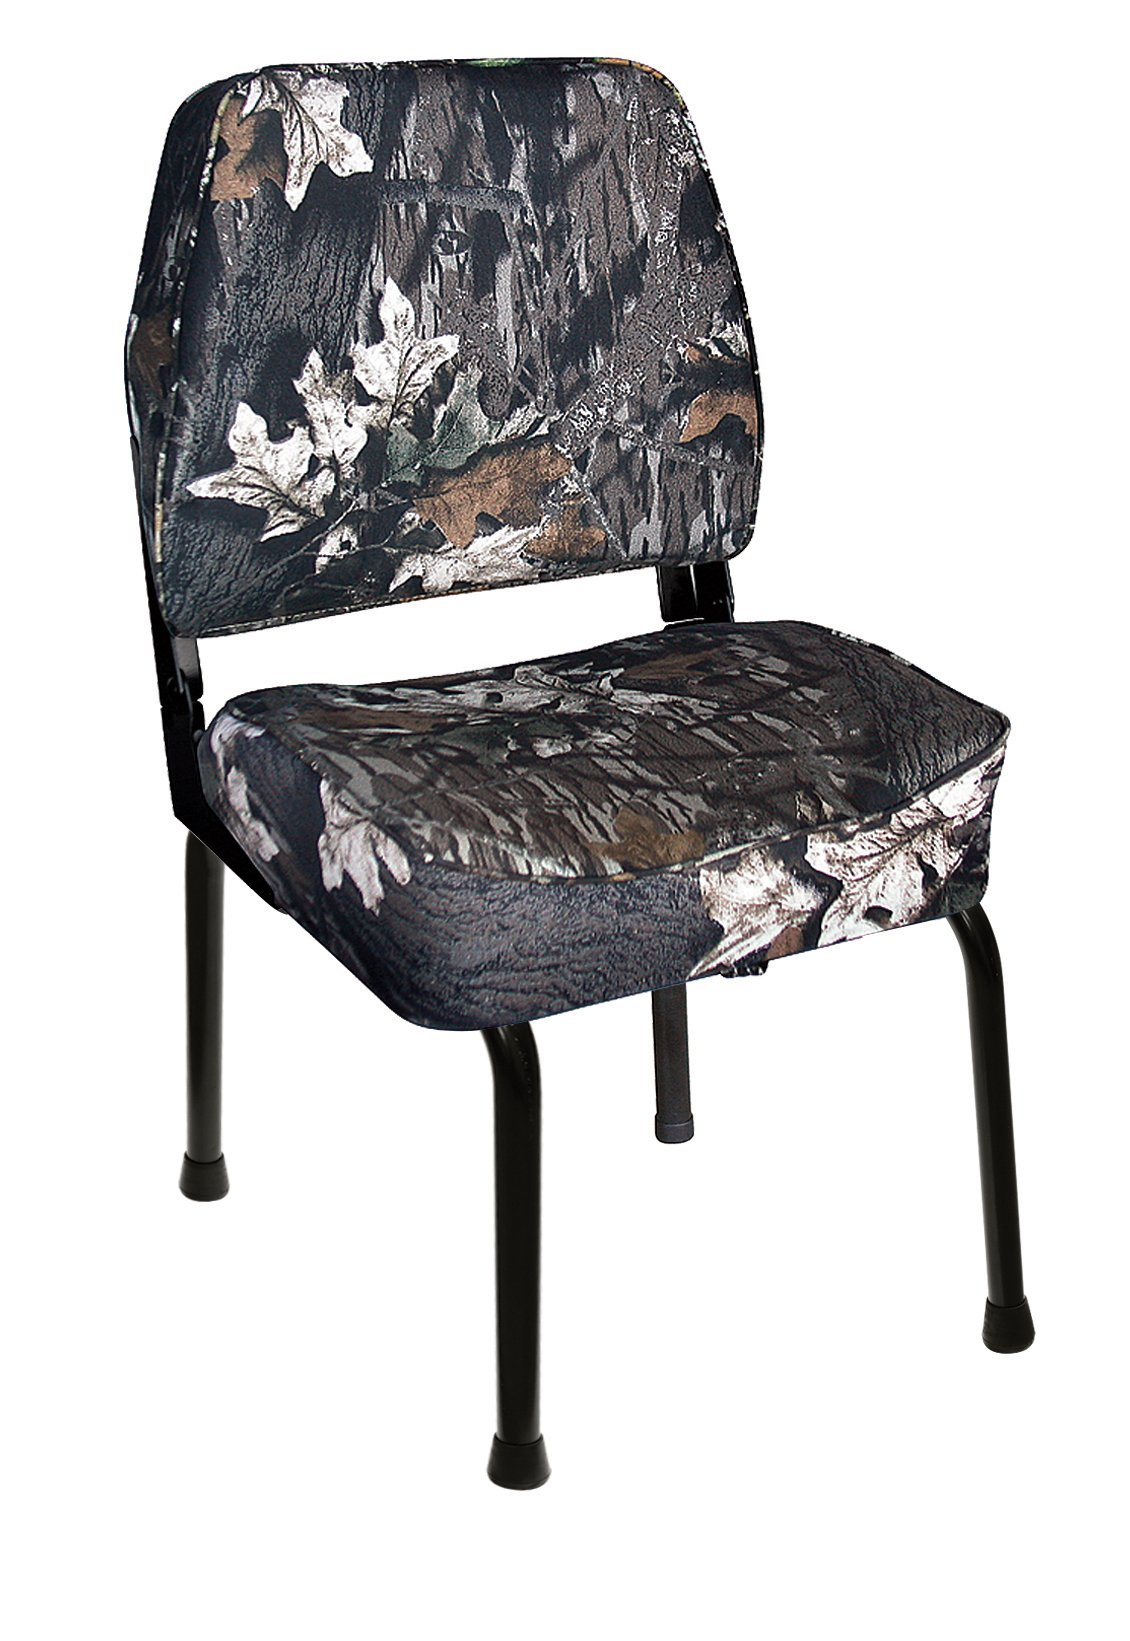 Wise Outdoors WD305-763FLD Hunting Blind Seat Combo with Folding Seat Stand & Swivel, Mossy Oak Break-Up Camo